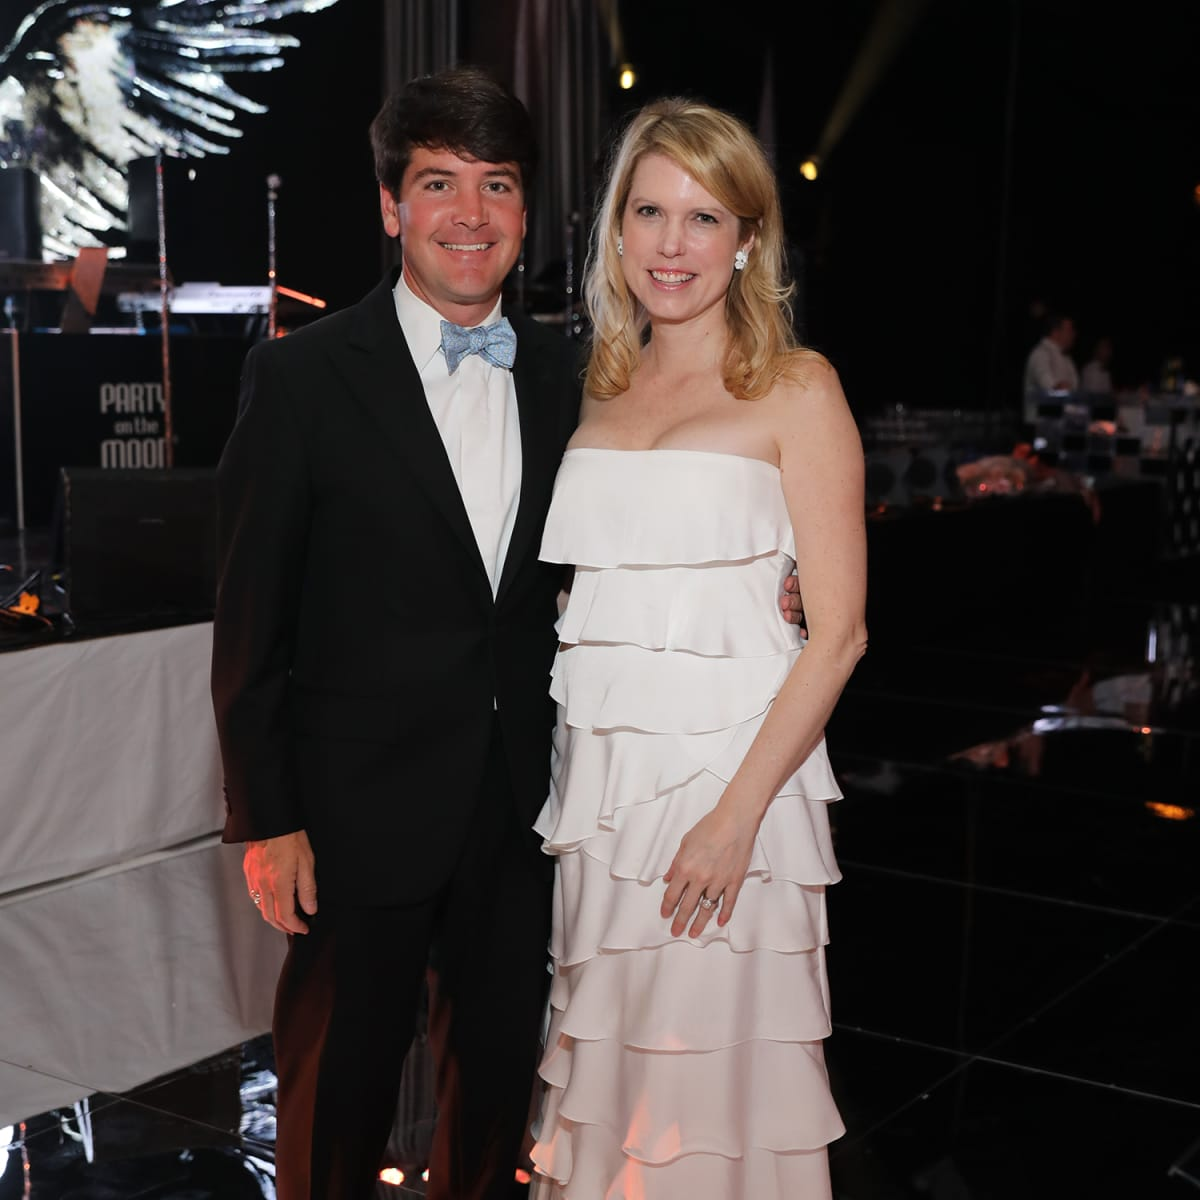 Houston, Ballet Ball, February 2018, Bill Toomey, Courtney Toomey